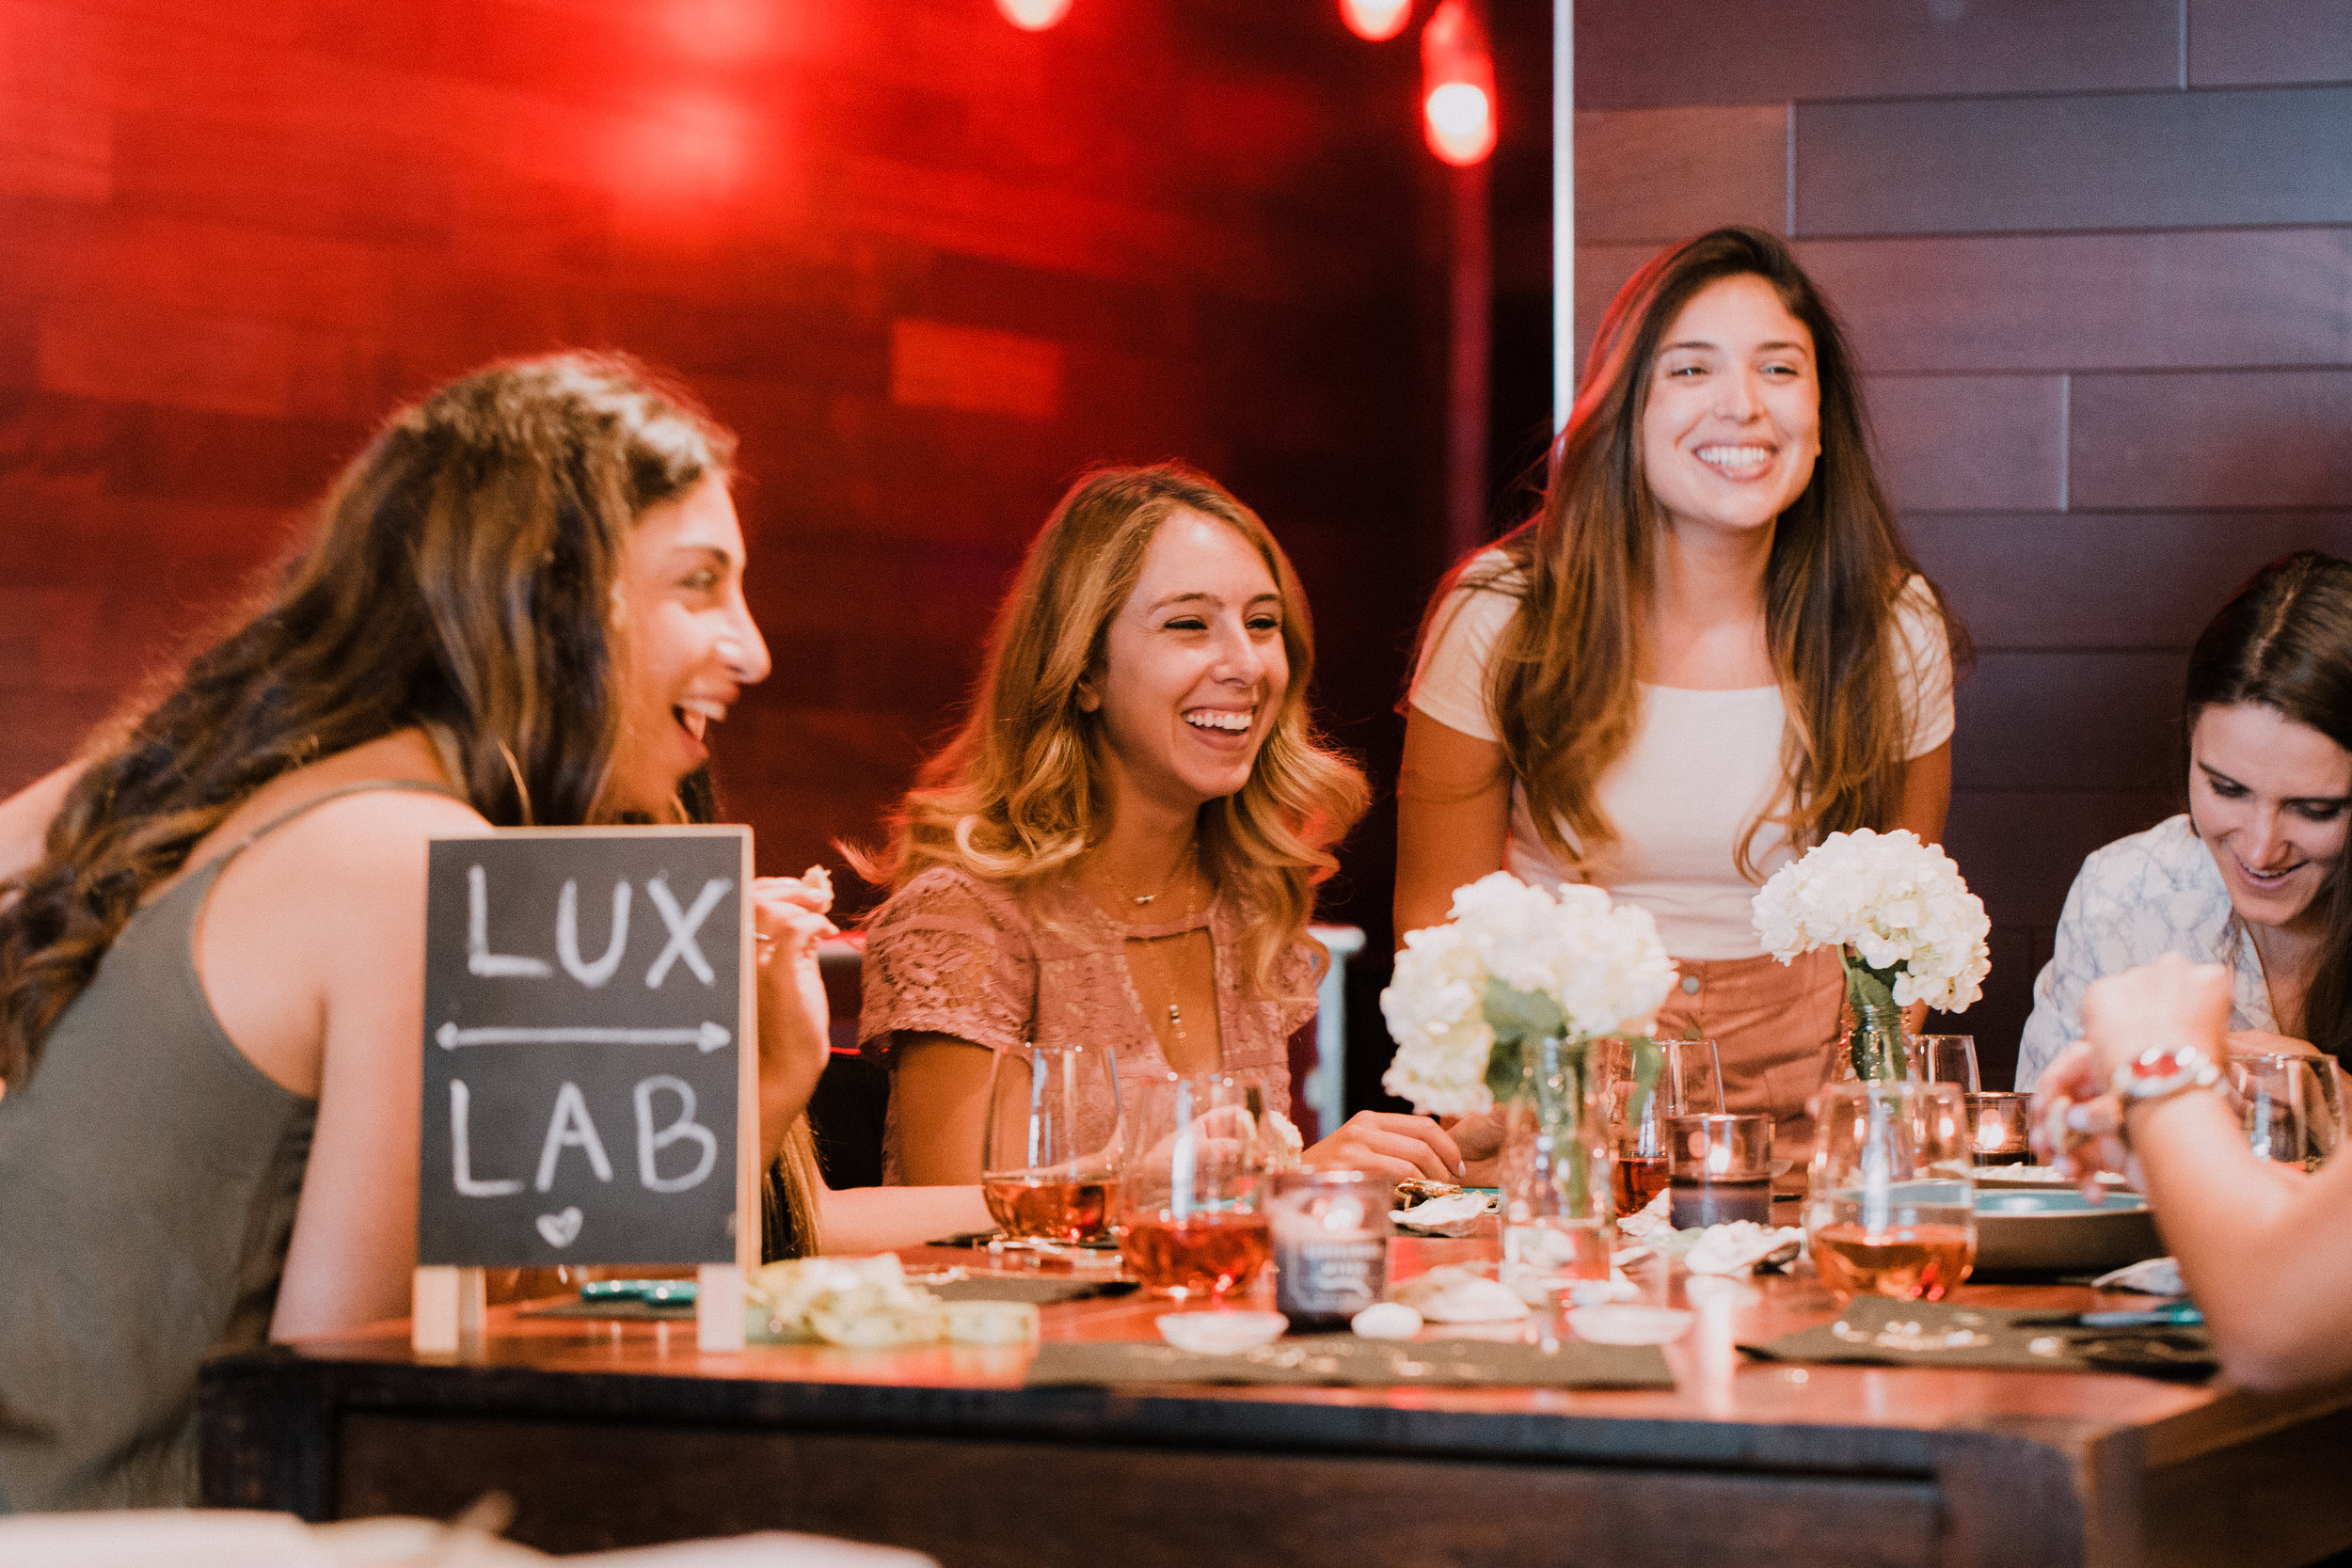 Event: Luxlab Launch Party   Location: New York City